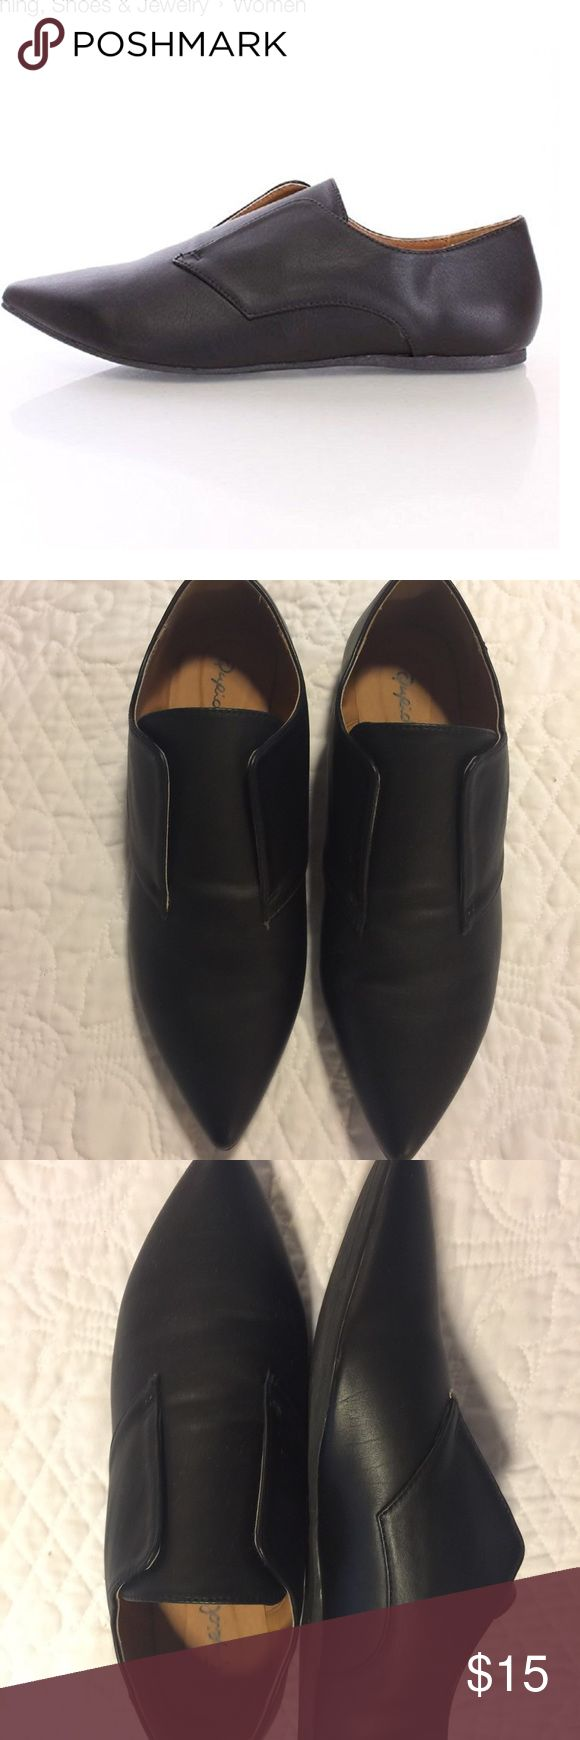 Qupid Women's leatherette pointy oxford flat Qupid women's leatherette laceless pointy toe oxford flats. Worn only once. Excellent condition. Shoes Flats & Loafers